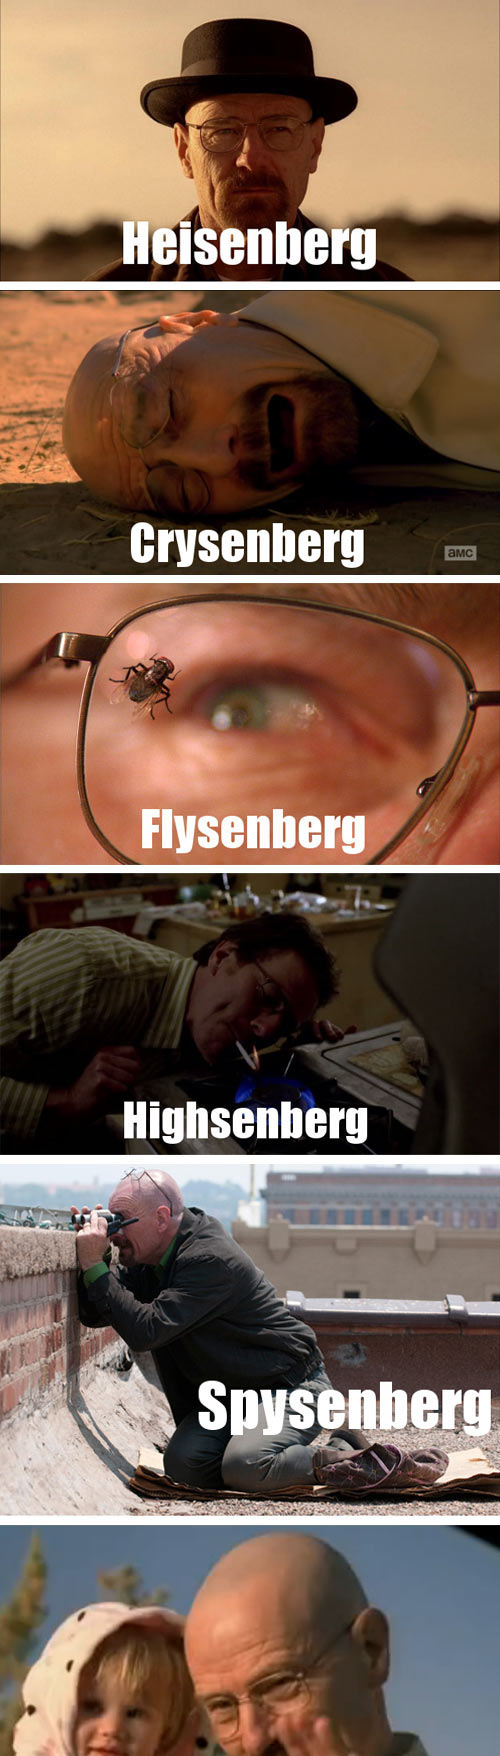 The many faces of Heisenberg...